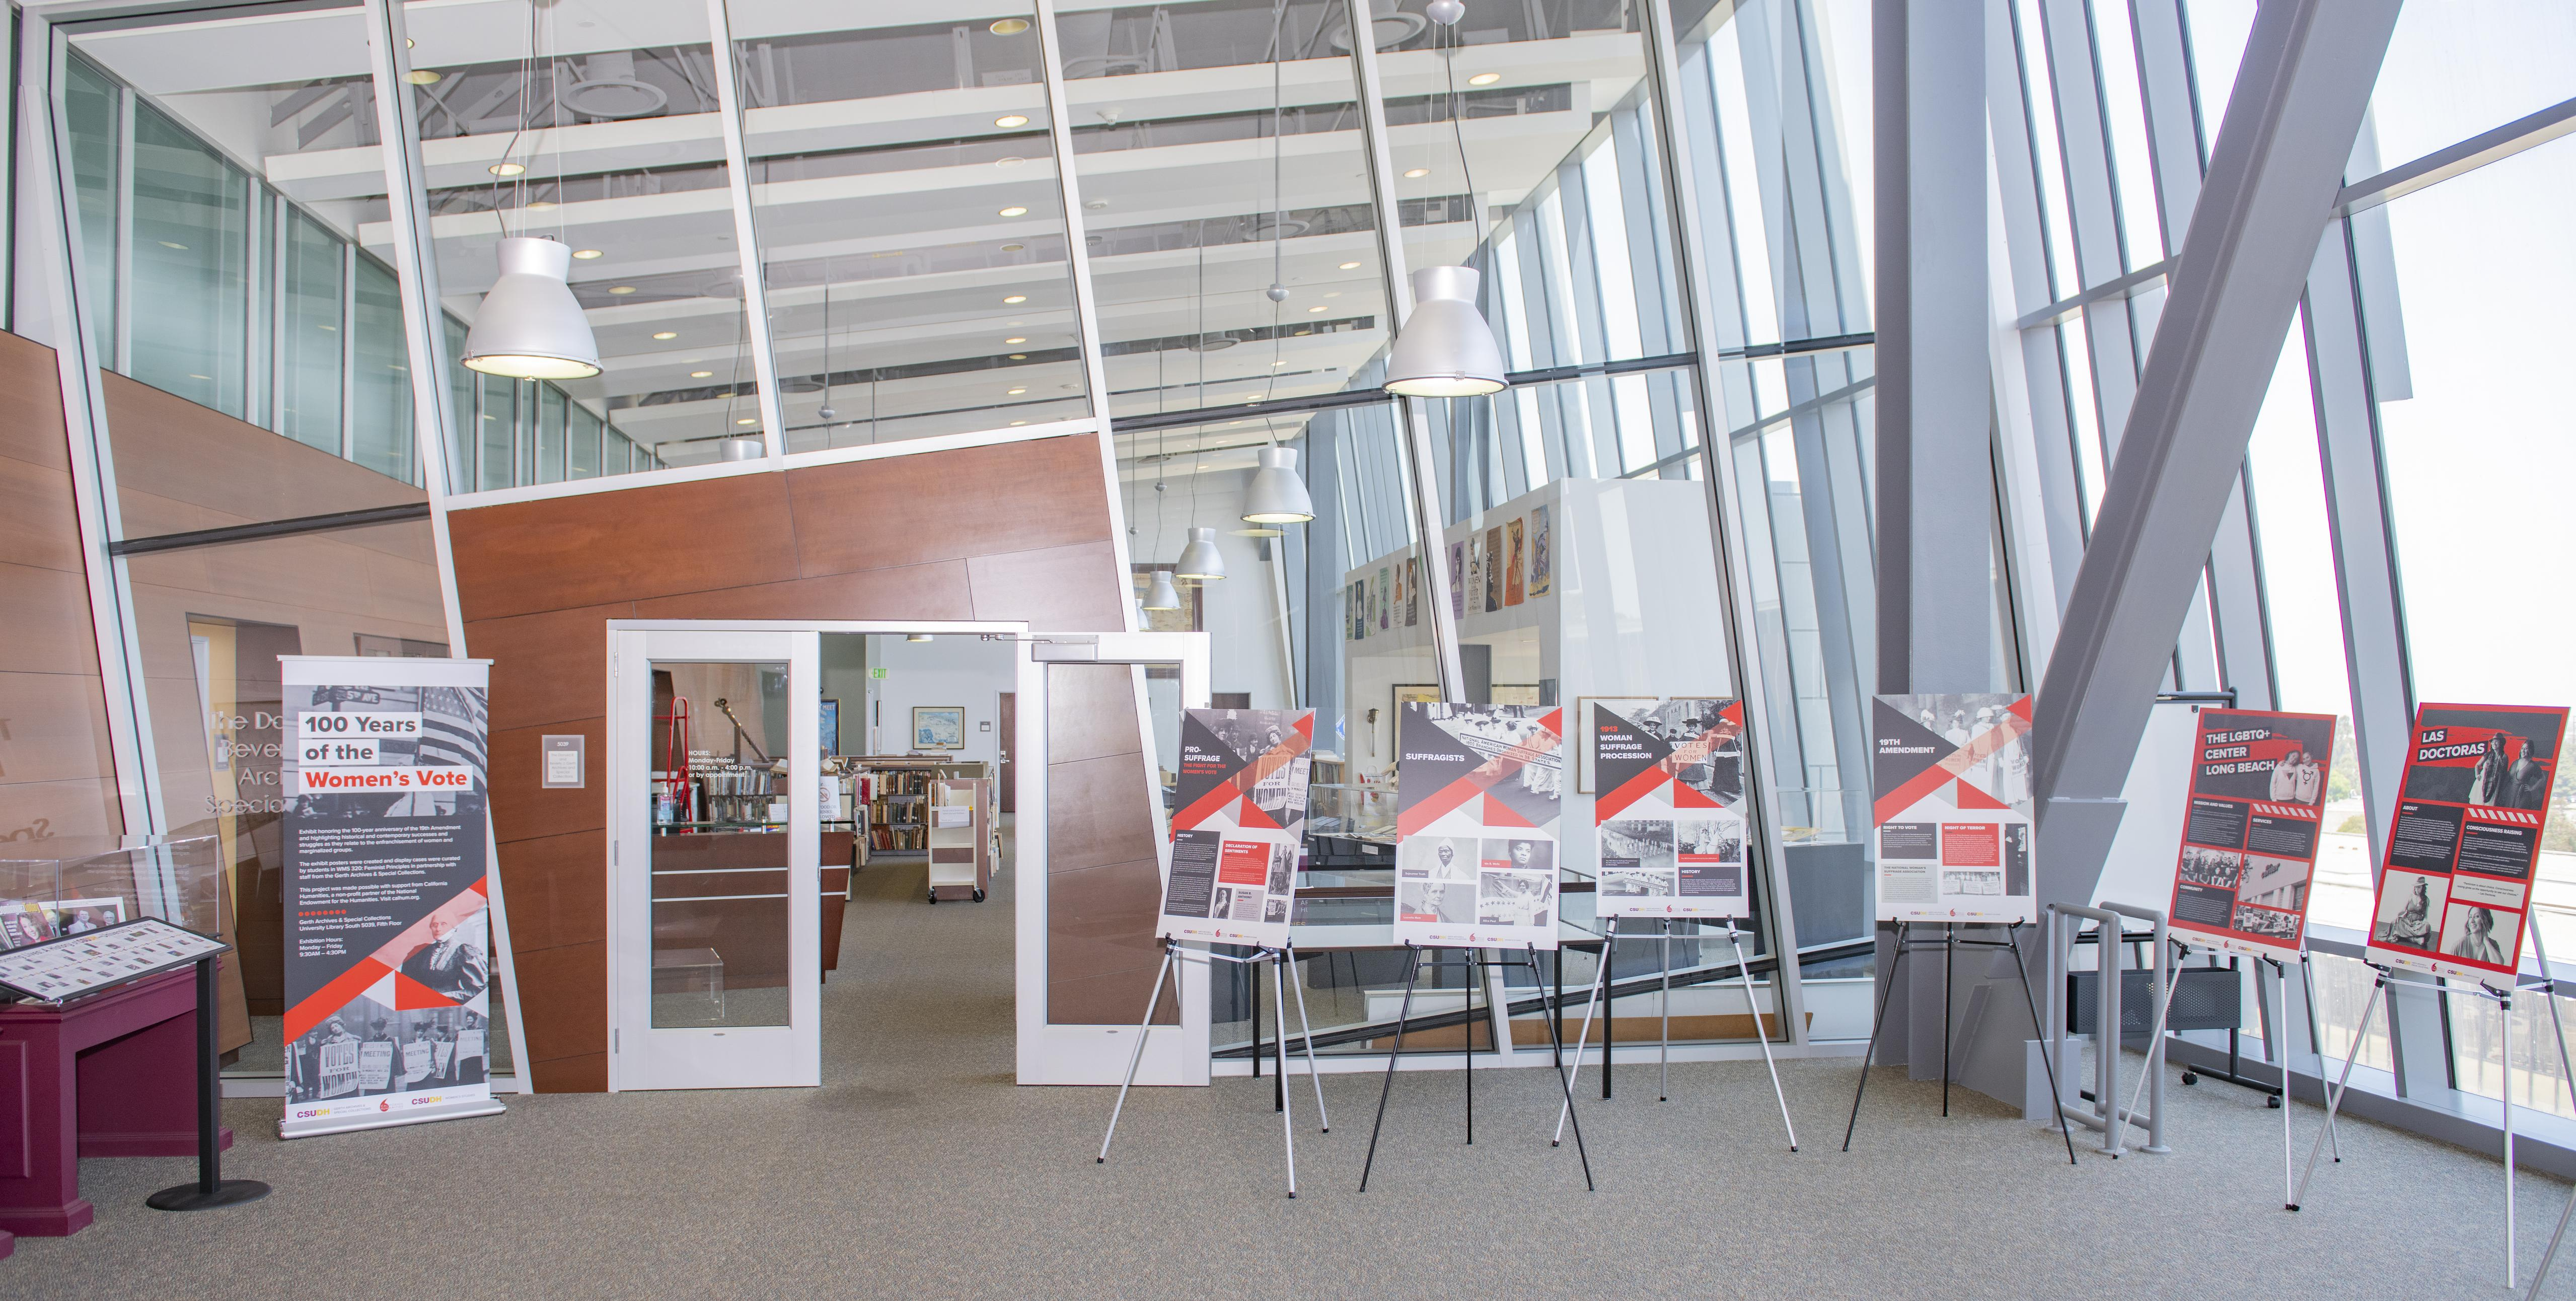 Gerth Archives & Special Collections on the 5th floor of the CSUDH Library with exhibit posters.